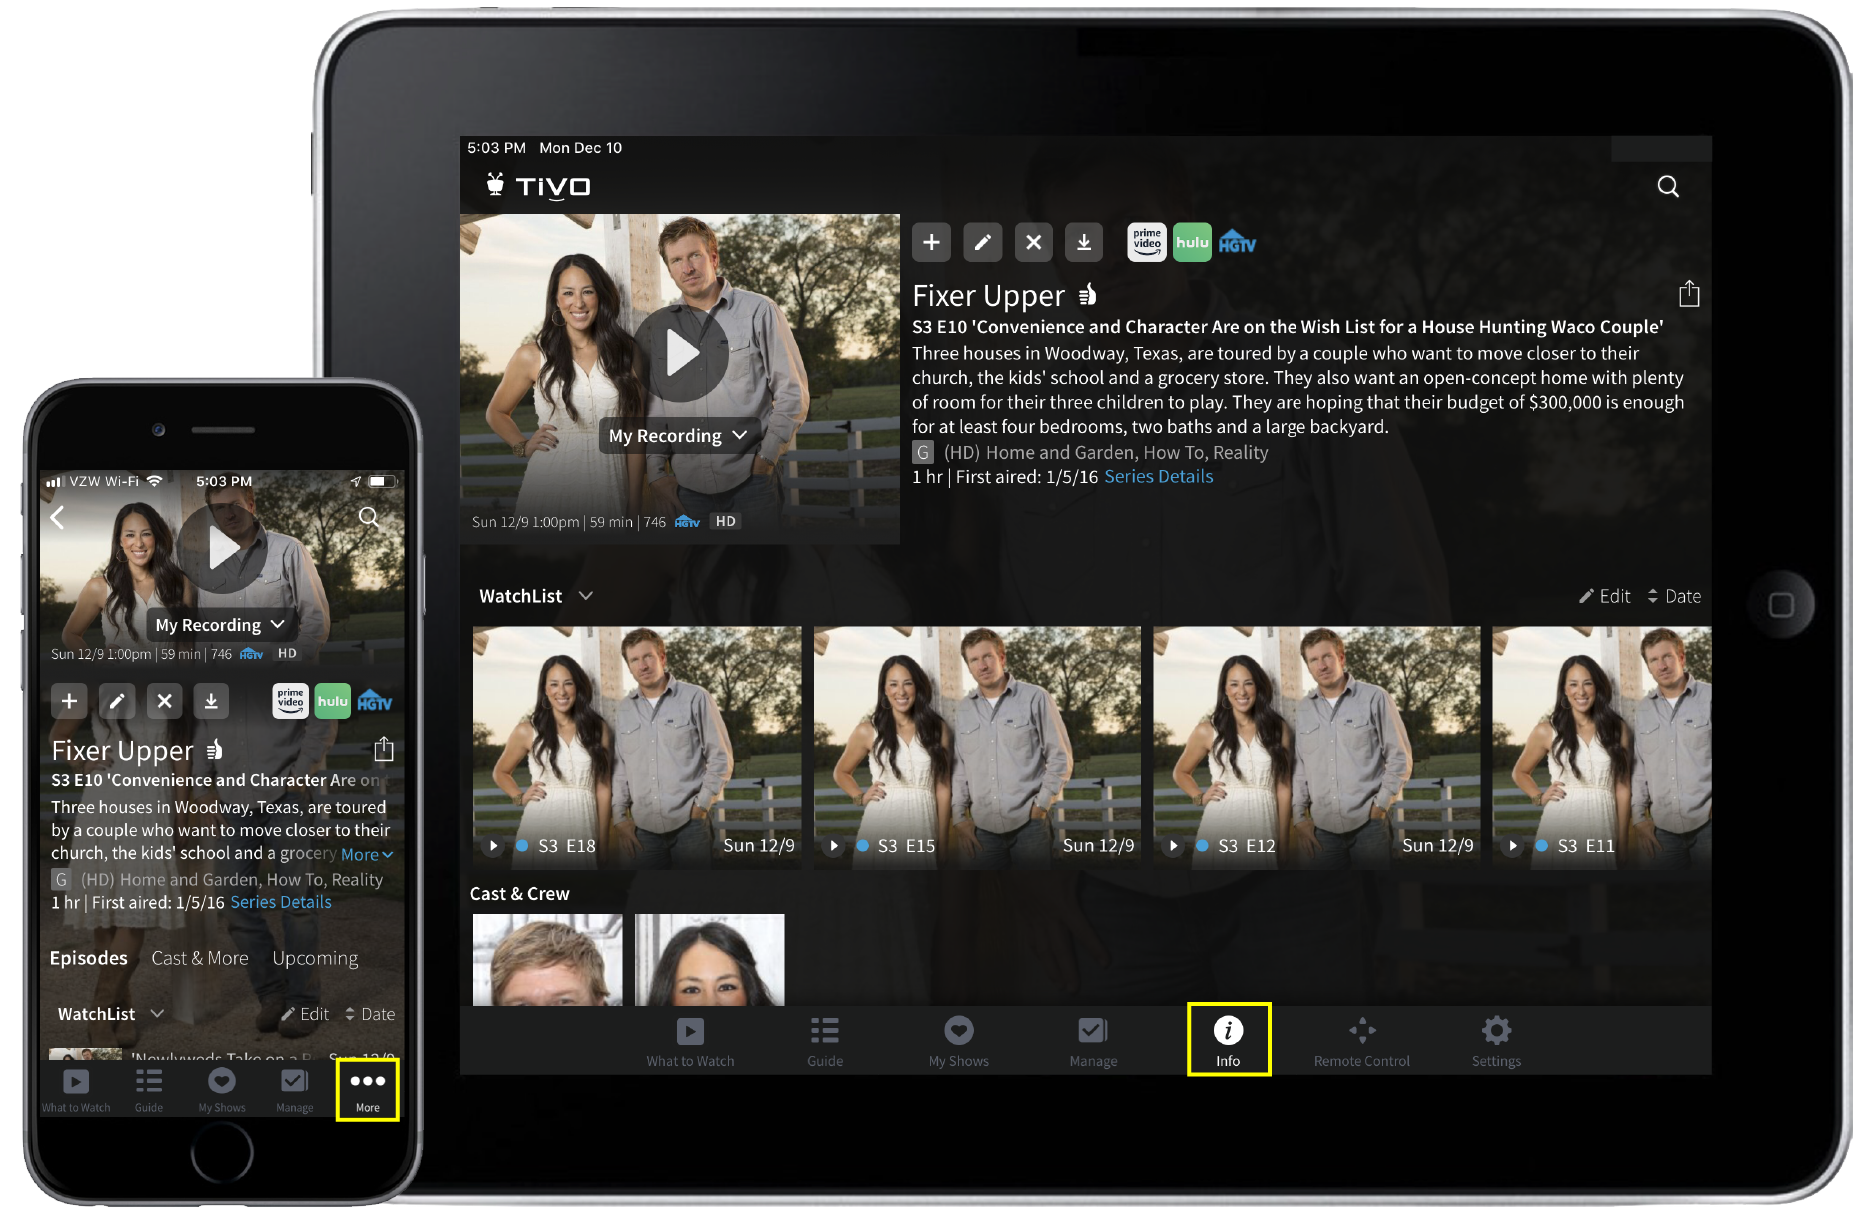 The TiVo app for iOS devices